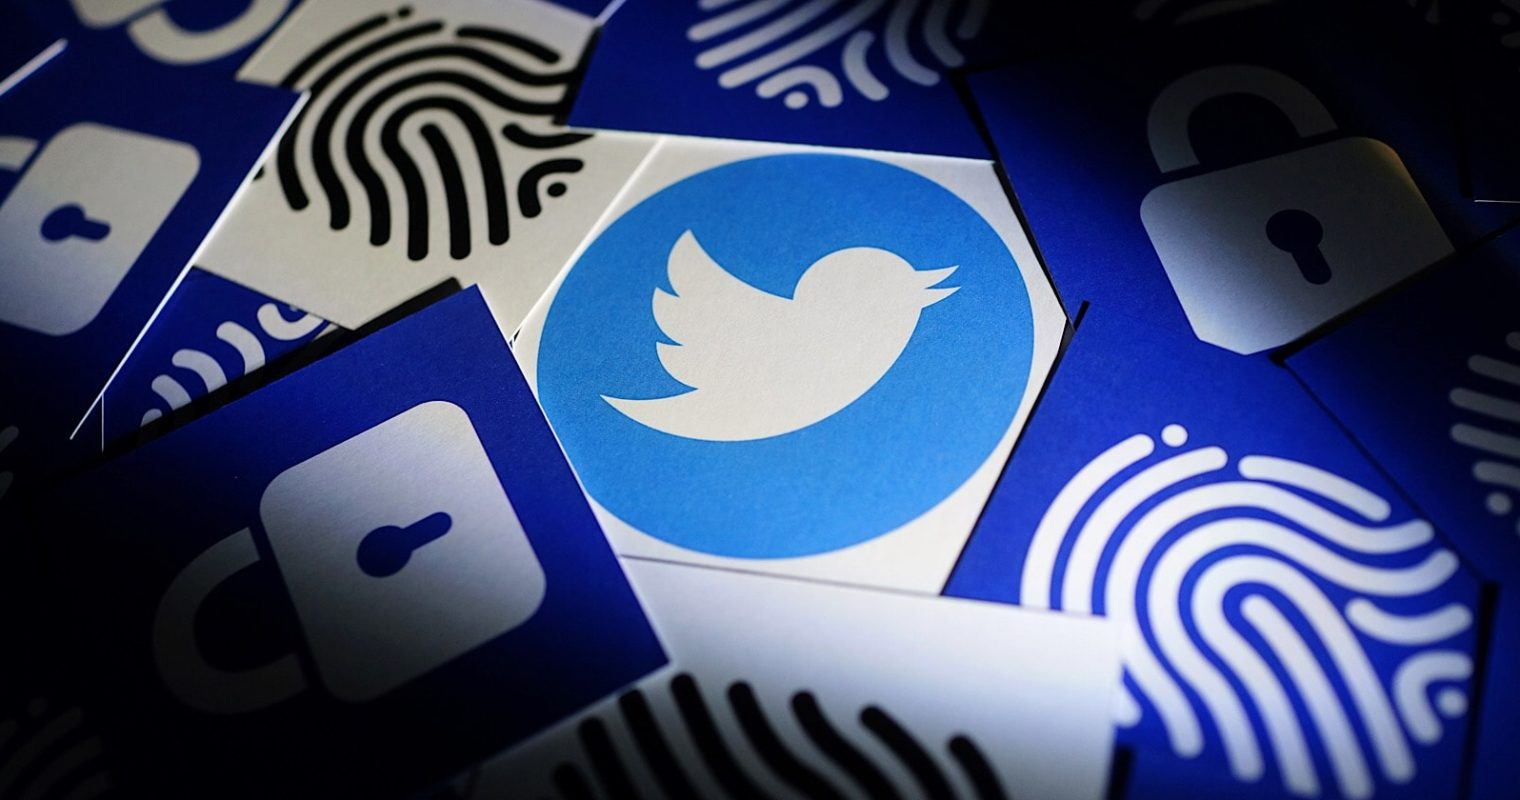 Twitter to Filter Out Negative Tweets in Search Results